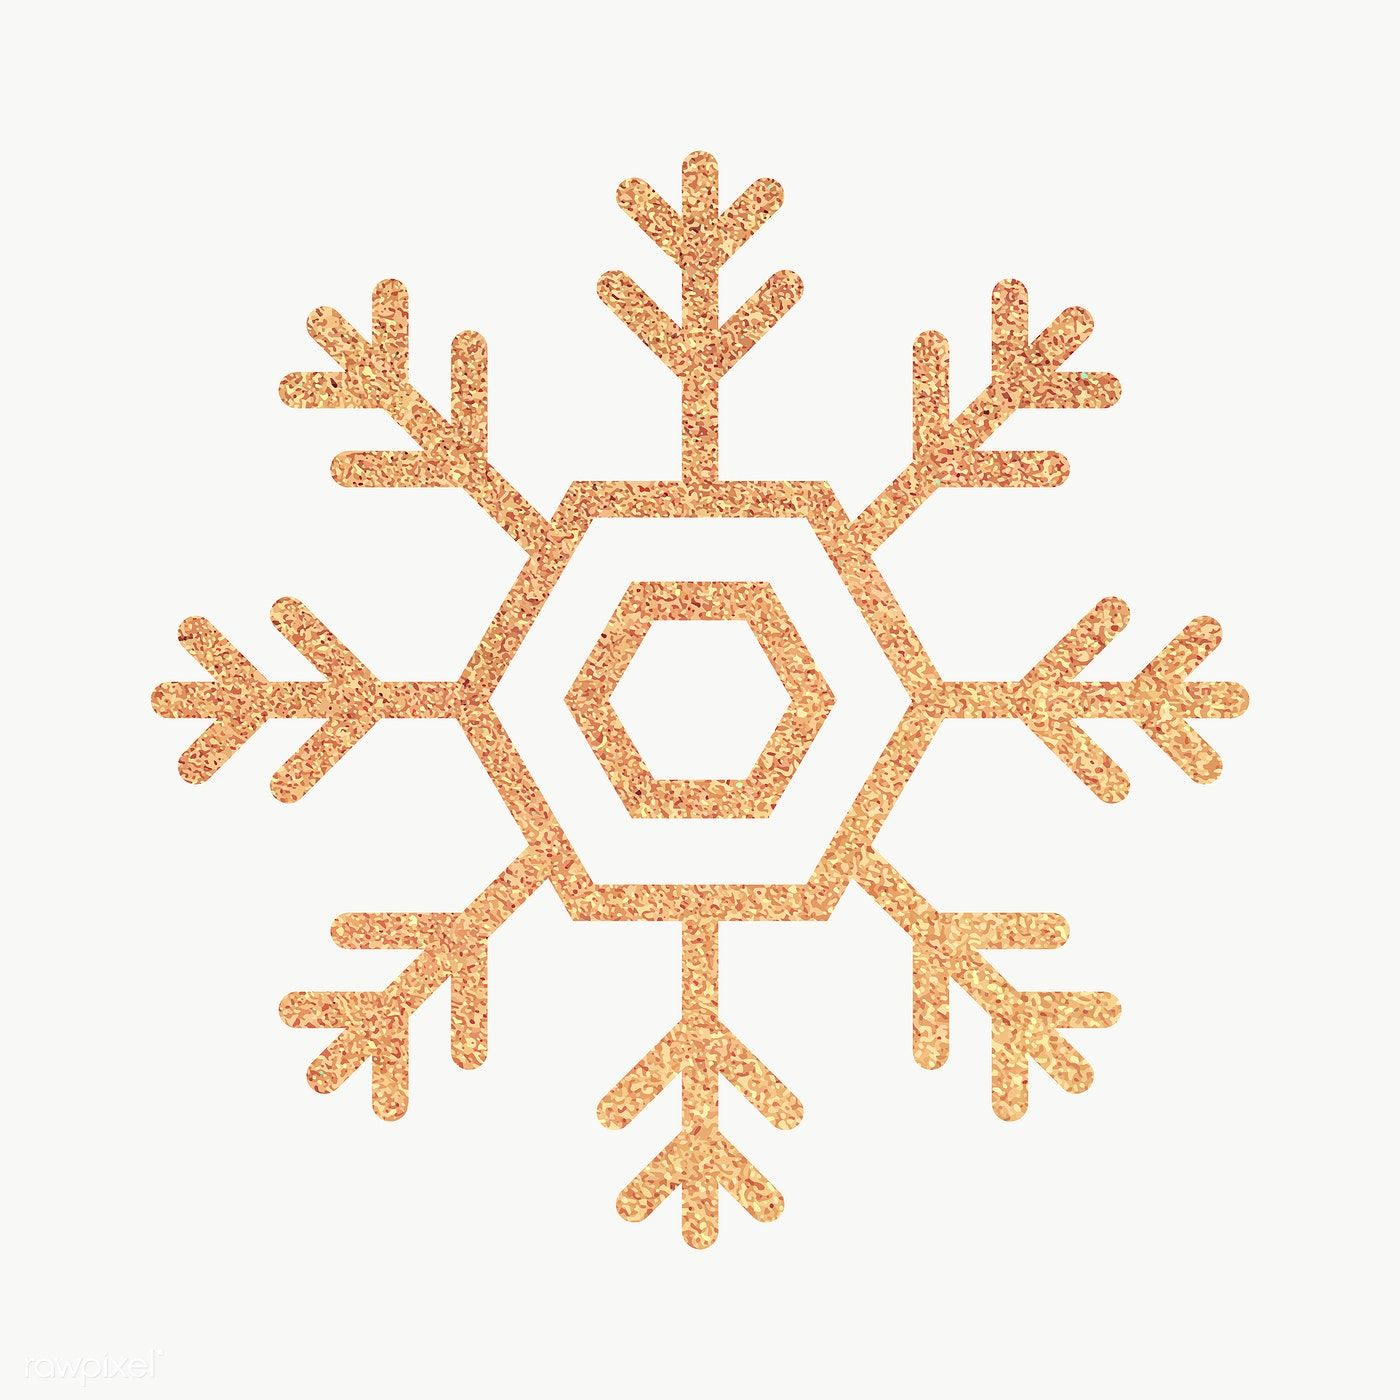 Download Premium Png Of Glittery Gold Snowflake Element Vector 1227573 Gold Snowflake Snowflakes Christmas Frames